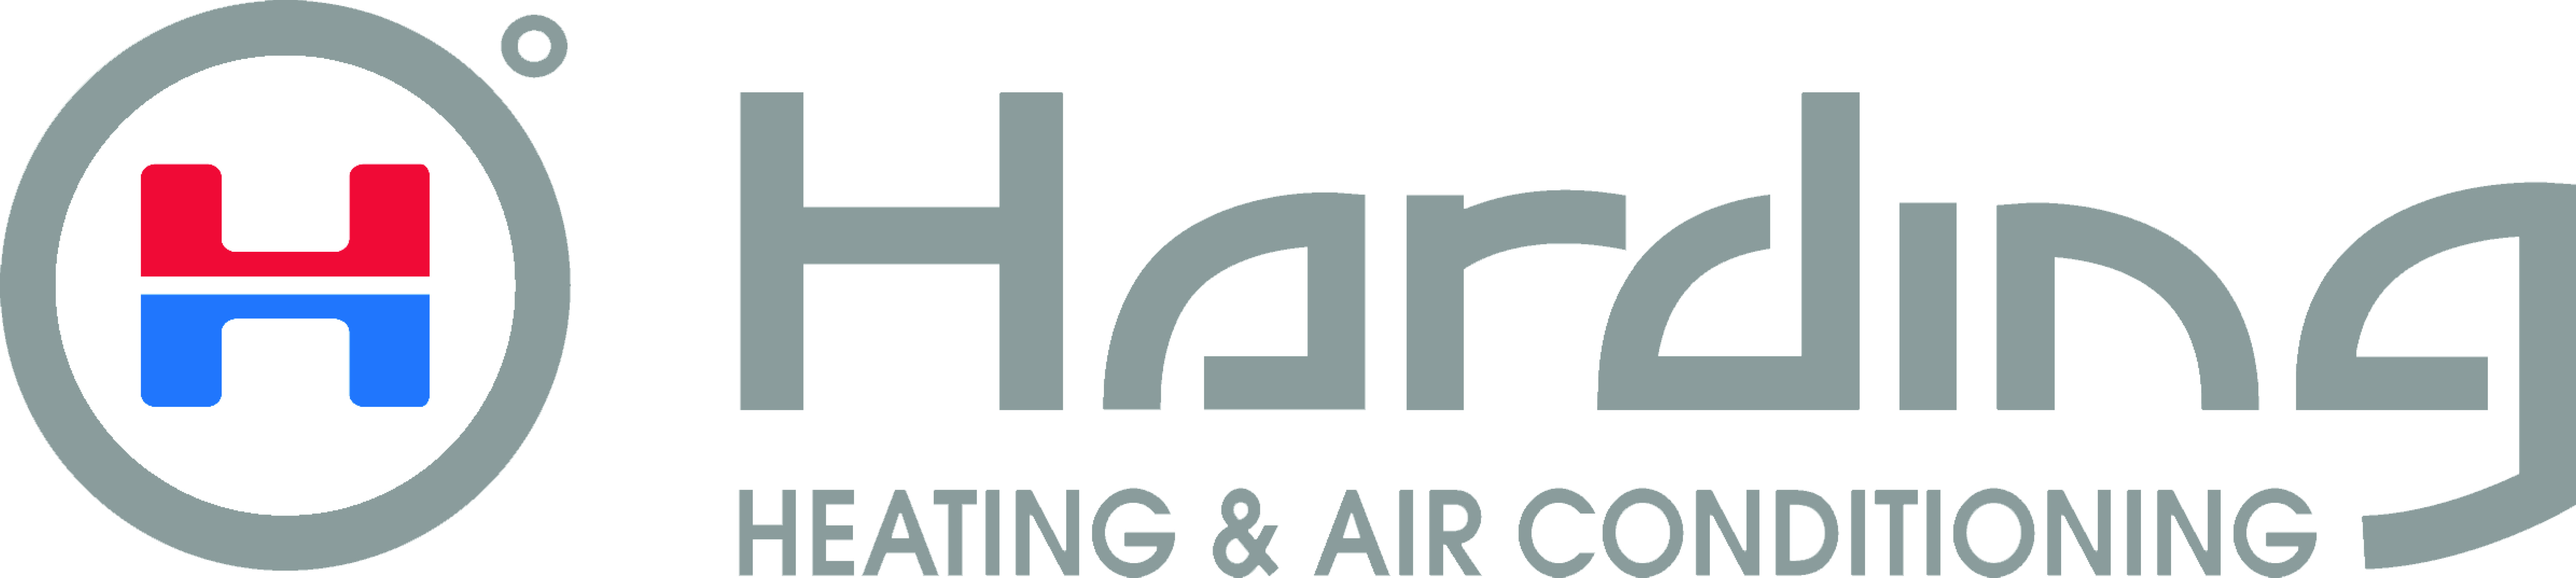 Harding Heating & Air Conditioning